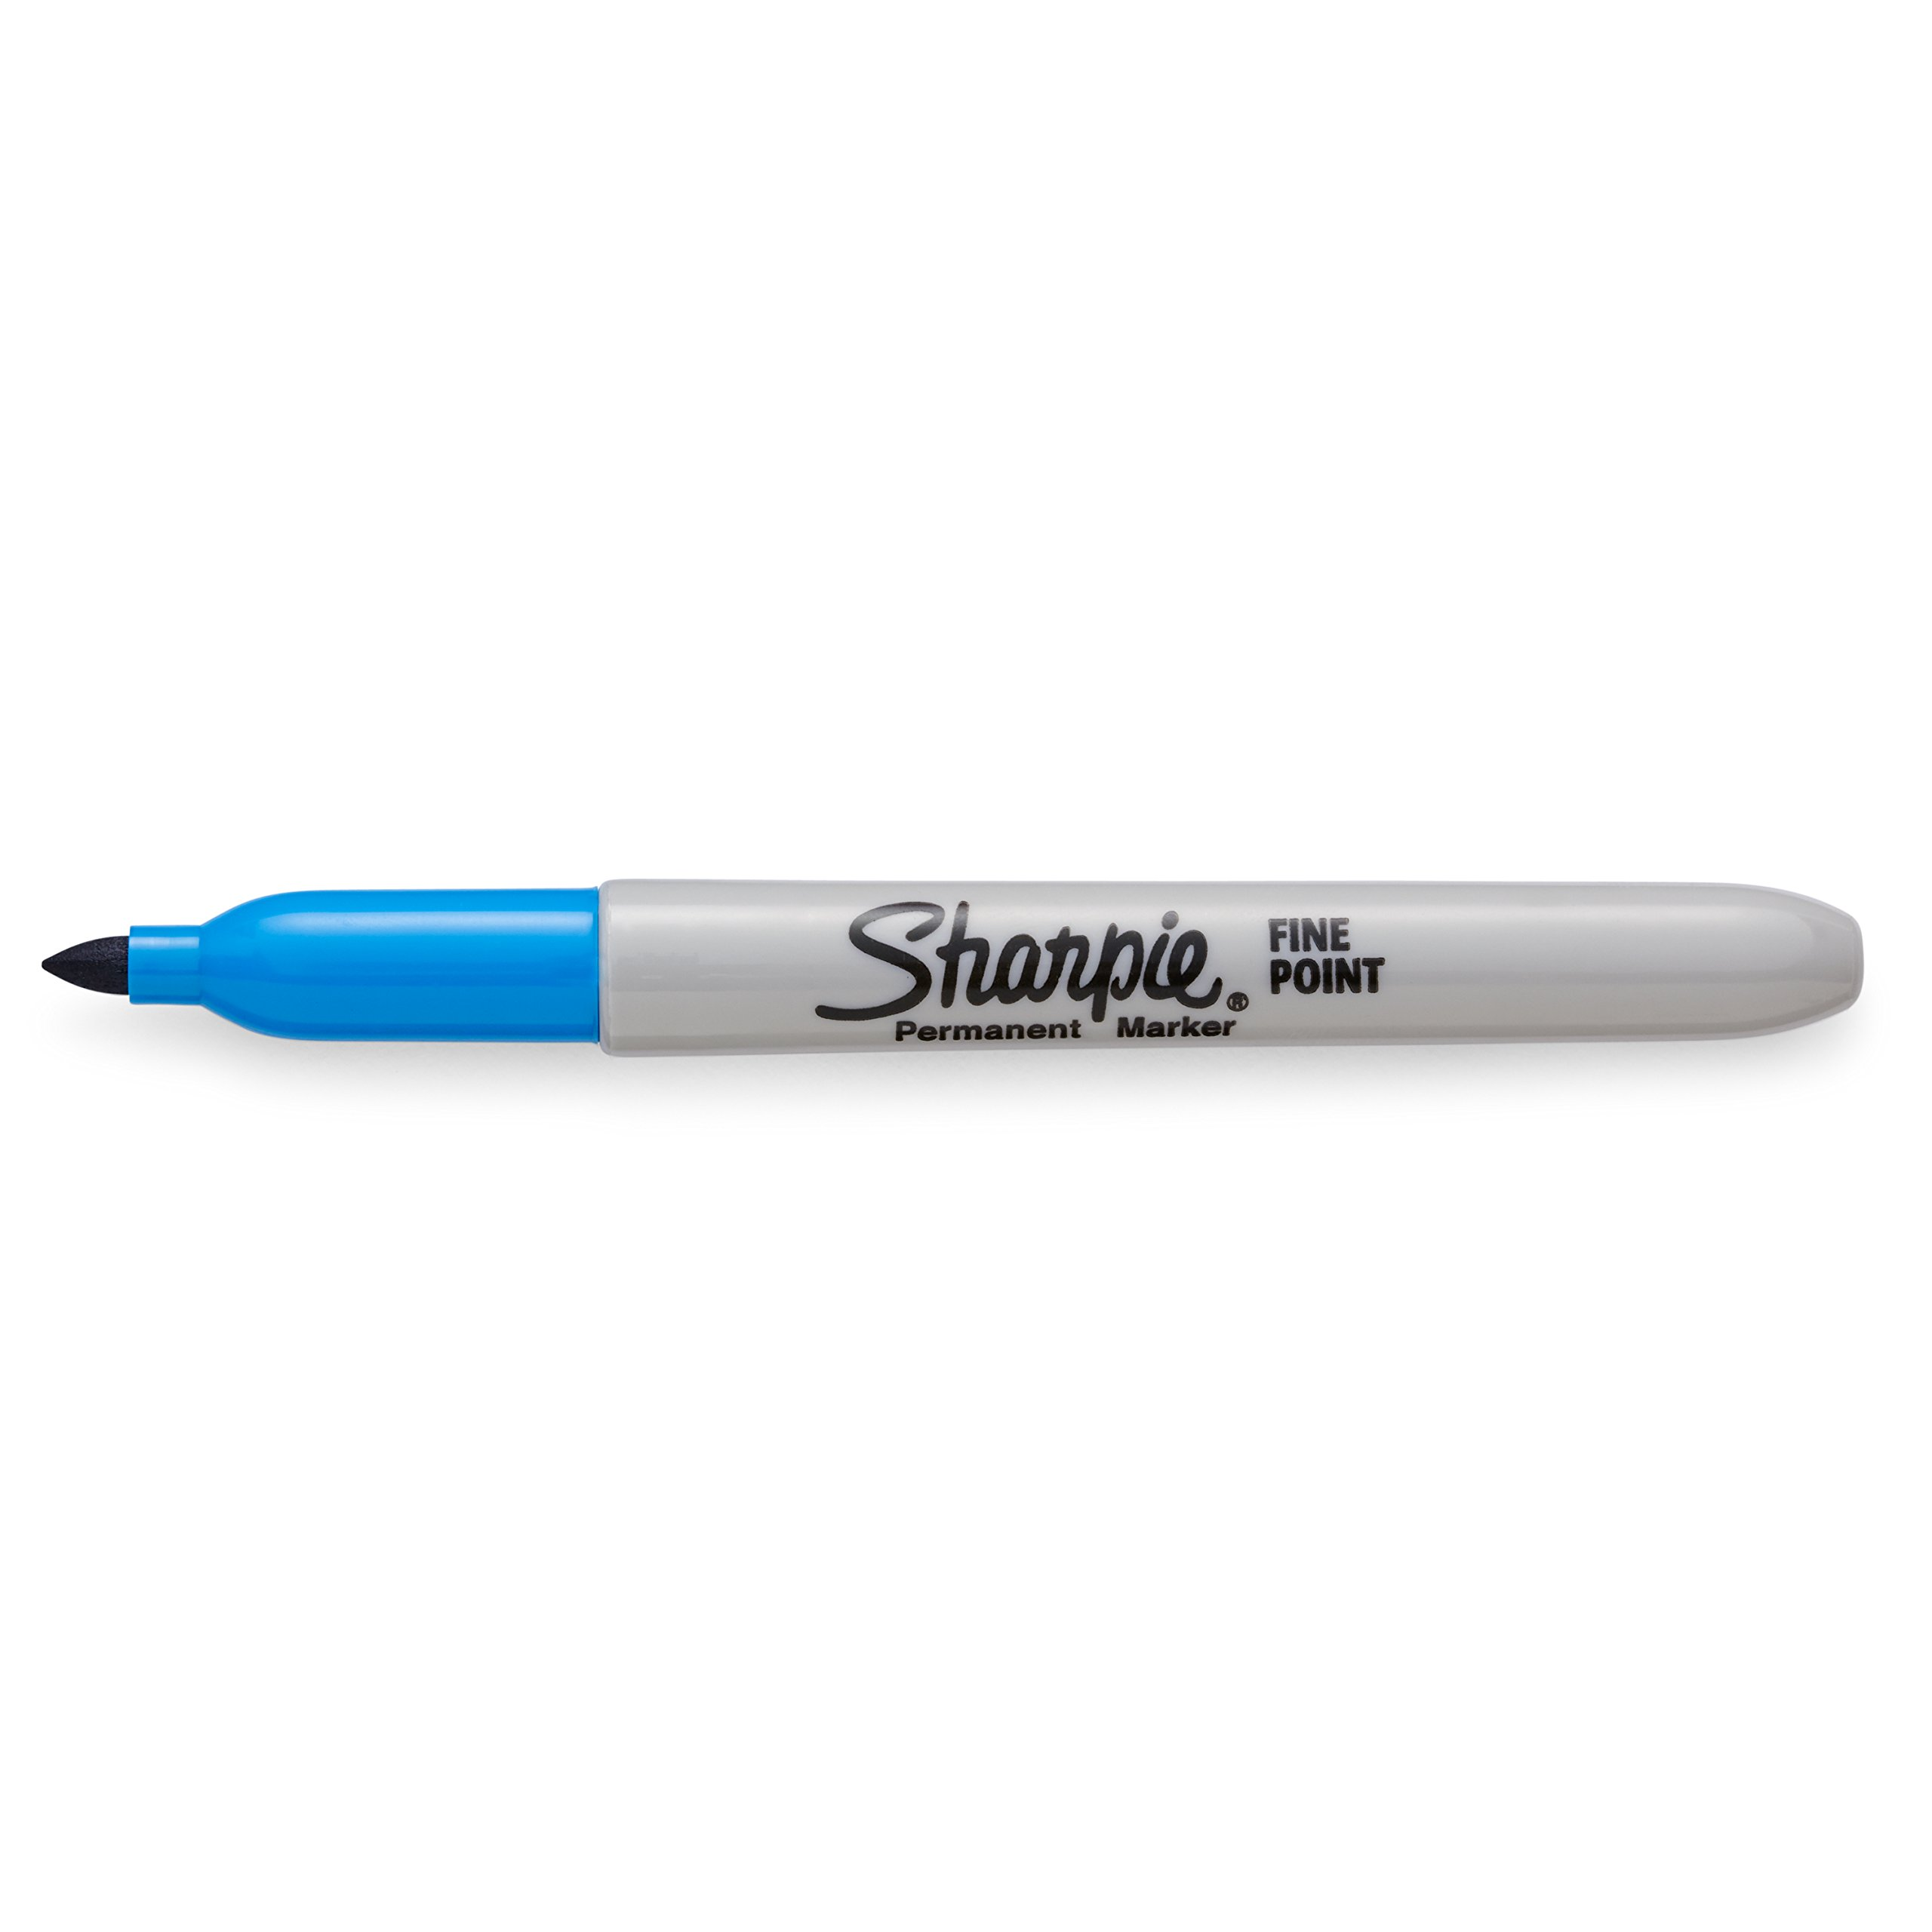 Sharpie Color Burst Permanent Markers, Fine Point, Assorted Colors, 24 Count by Sharpie (Image #25)